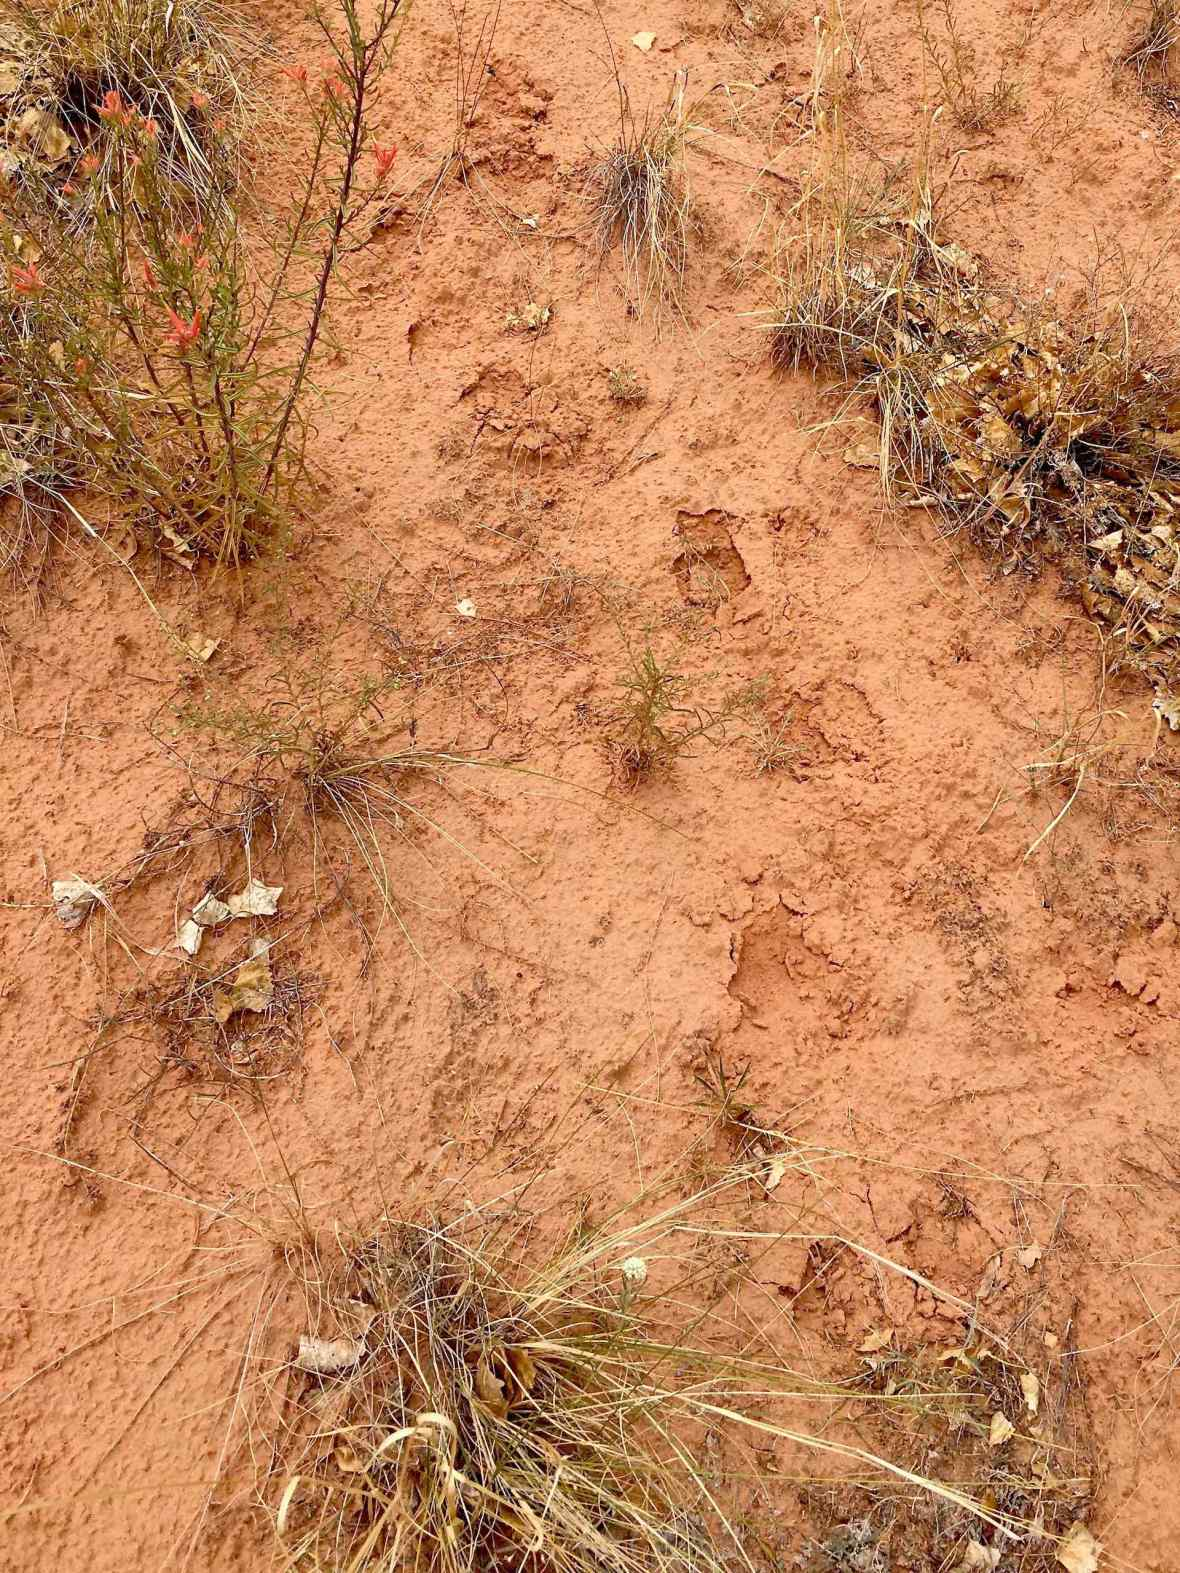 Fresh Mountain Lion tracks near the Pleasant Creek Trail in Capitol Reef National Park